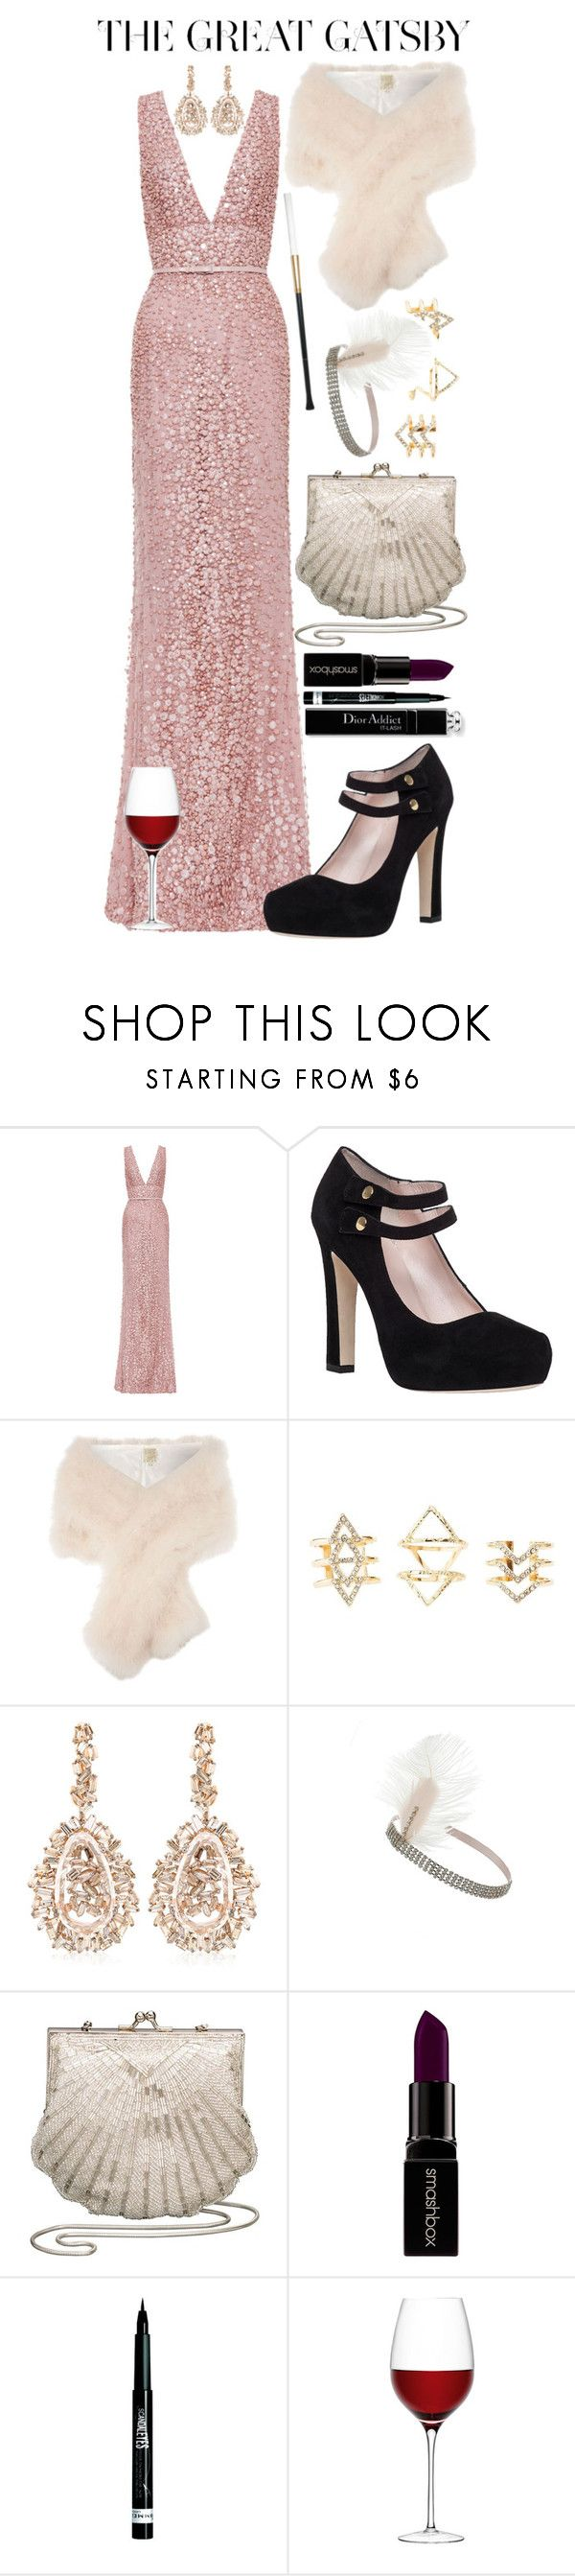 """Our prom theme is The Great Gatsby"" by ockey-33 ❤ liked on Polyvore featuring Elie Saab, Kate Spade, Biba, Charlotte Russe, Suzanne Kalan, Miss Selfridge, John Lewis, Smashbox, Rimmel and LSA International"